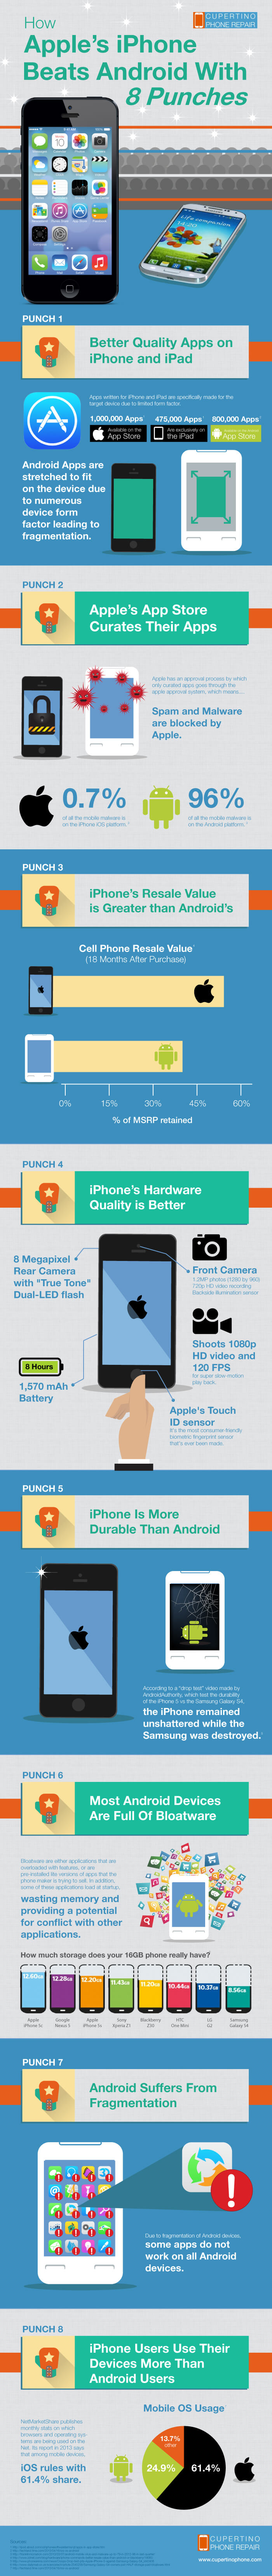 apple-iphone-beats-android-8-reasons-infographic